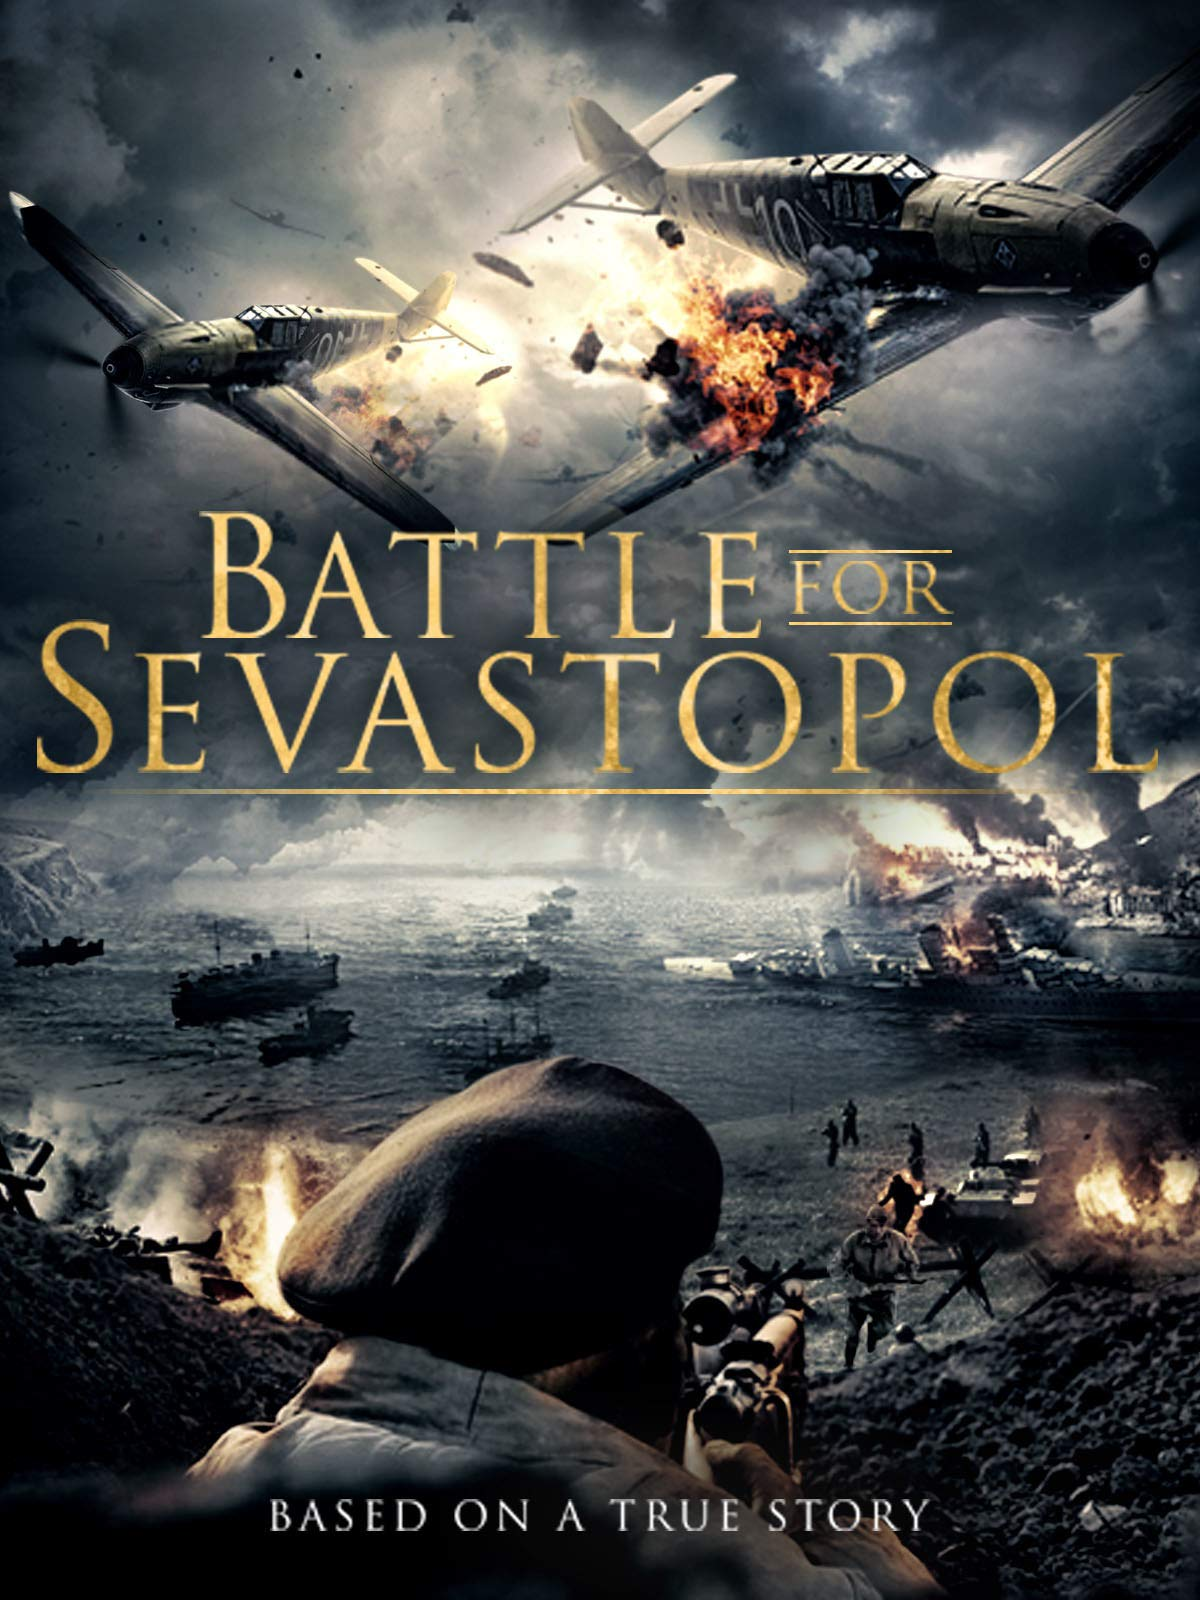 Battle for Sevastopol on Amazon Prime Instant Video UK